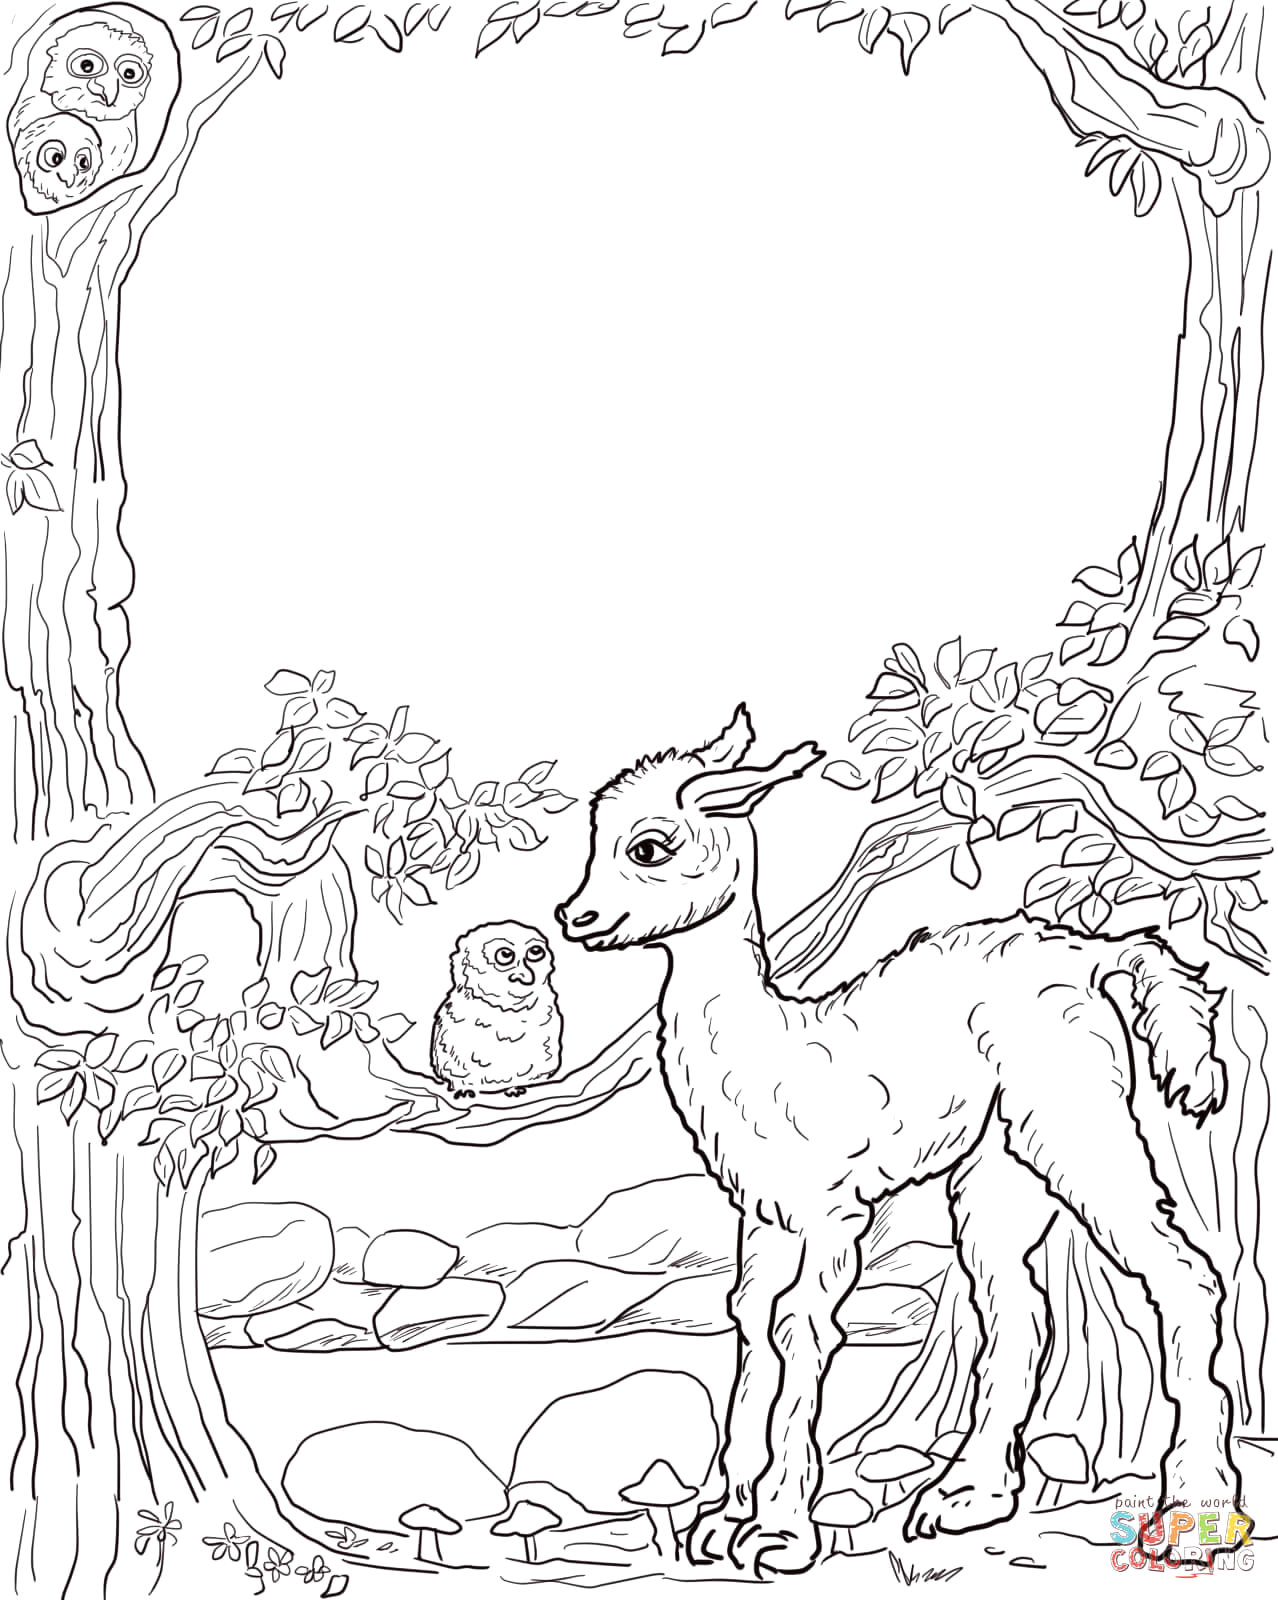 Is Your Mama A Llama Coloring Page is Your Mama A Llama Coloring Page